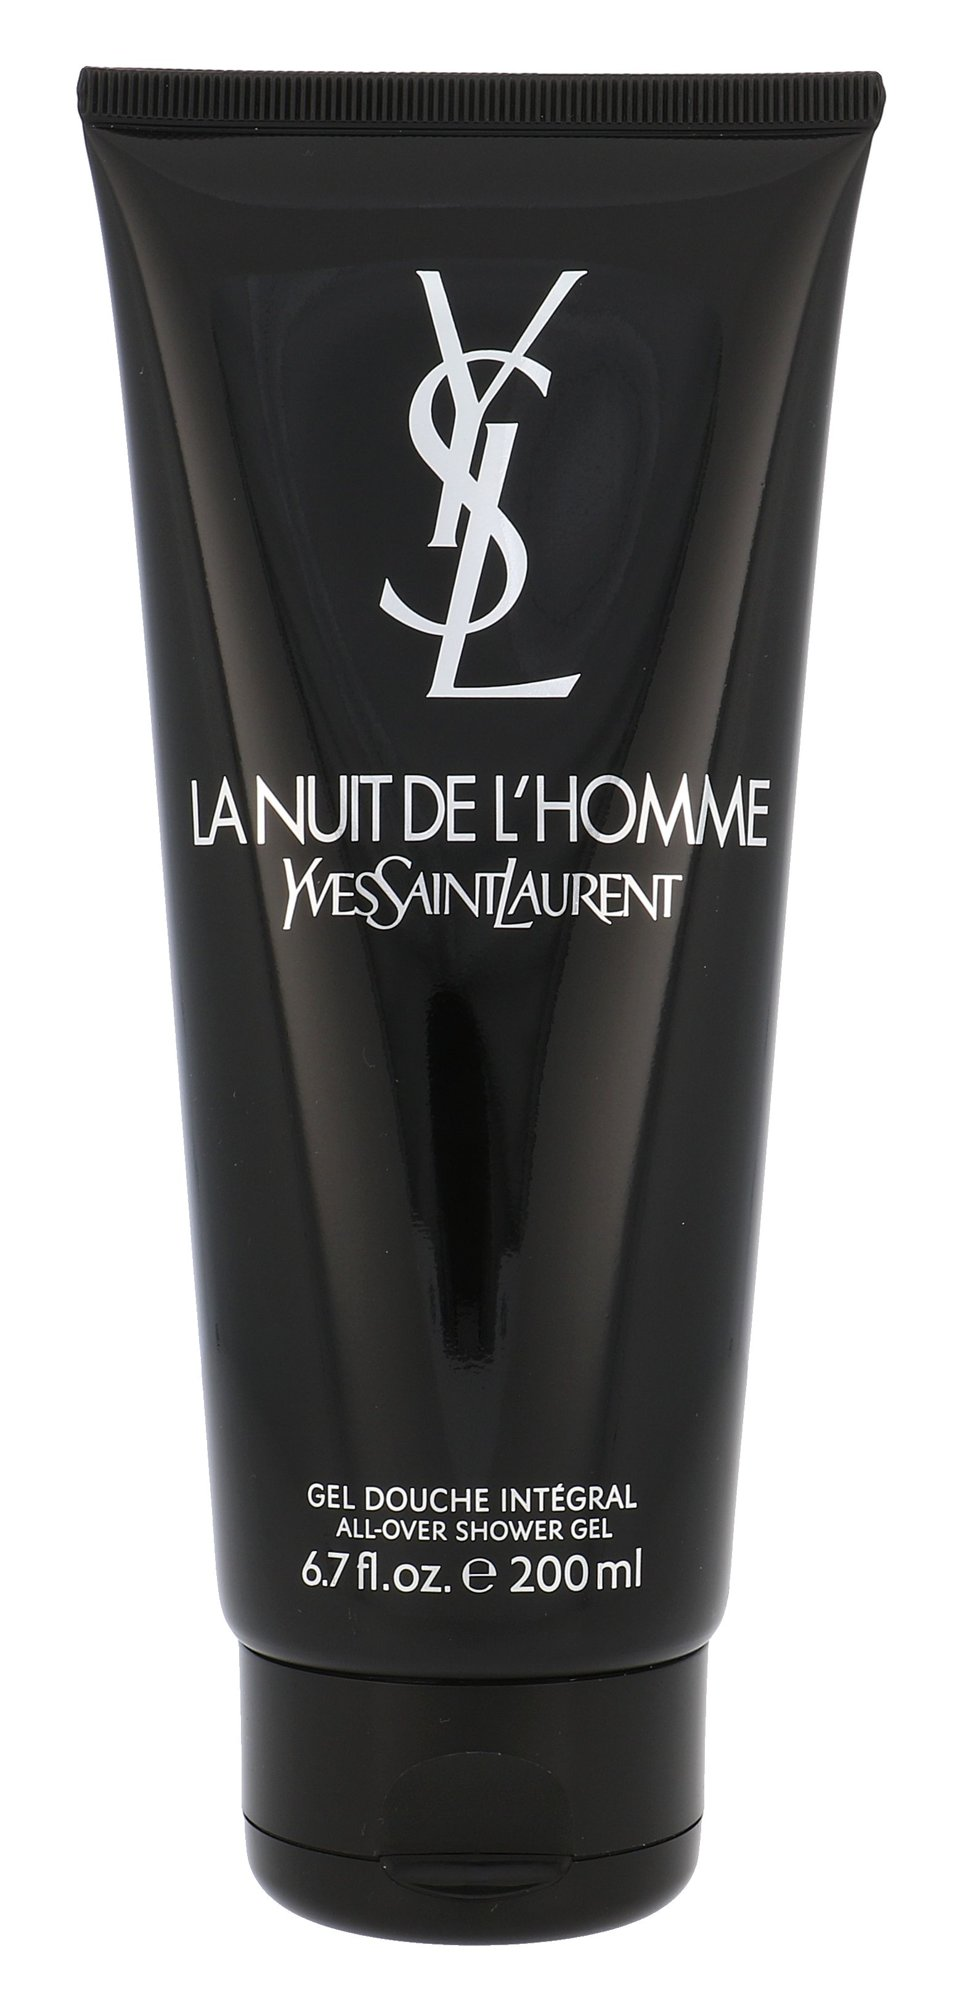 Yves Saint Laurent La Nuit De L Homme Shower gel 200ml